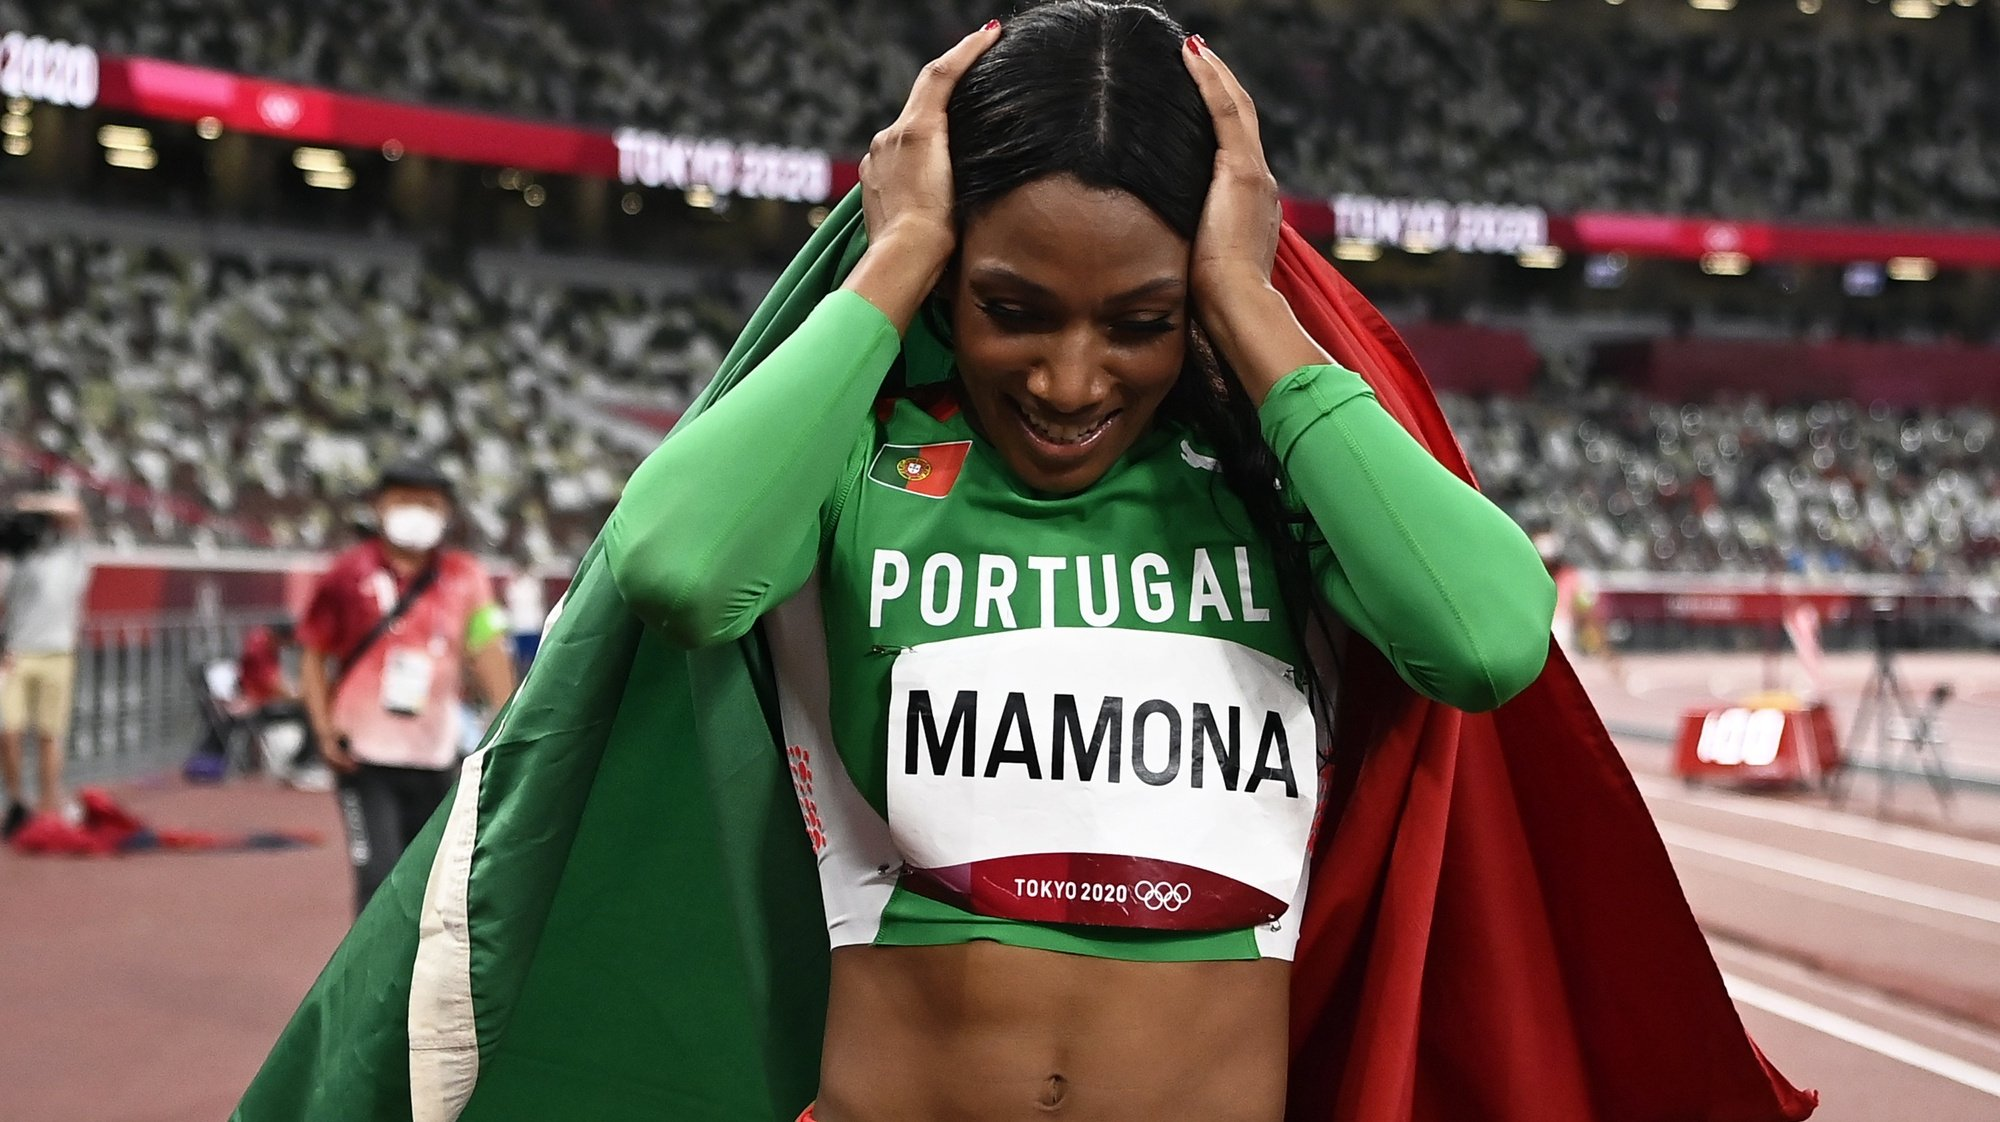 epa09385771 Silver medalist Patricia Mamona of Portugal celebrates after the Women's triple jump final during the Athletics events of the Tokyo 2020 Olympic Games at the Olympic Stadium in Tokyo, Japan, 01 August 2021.  EPA/CHRISTIAN BRUNA